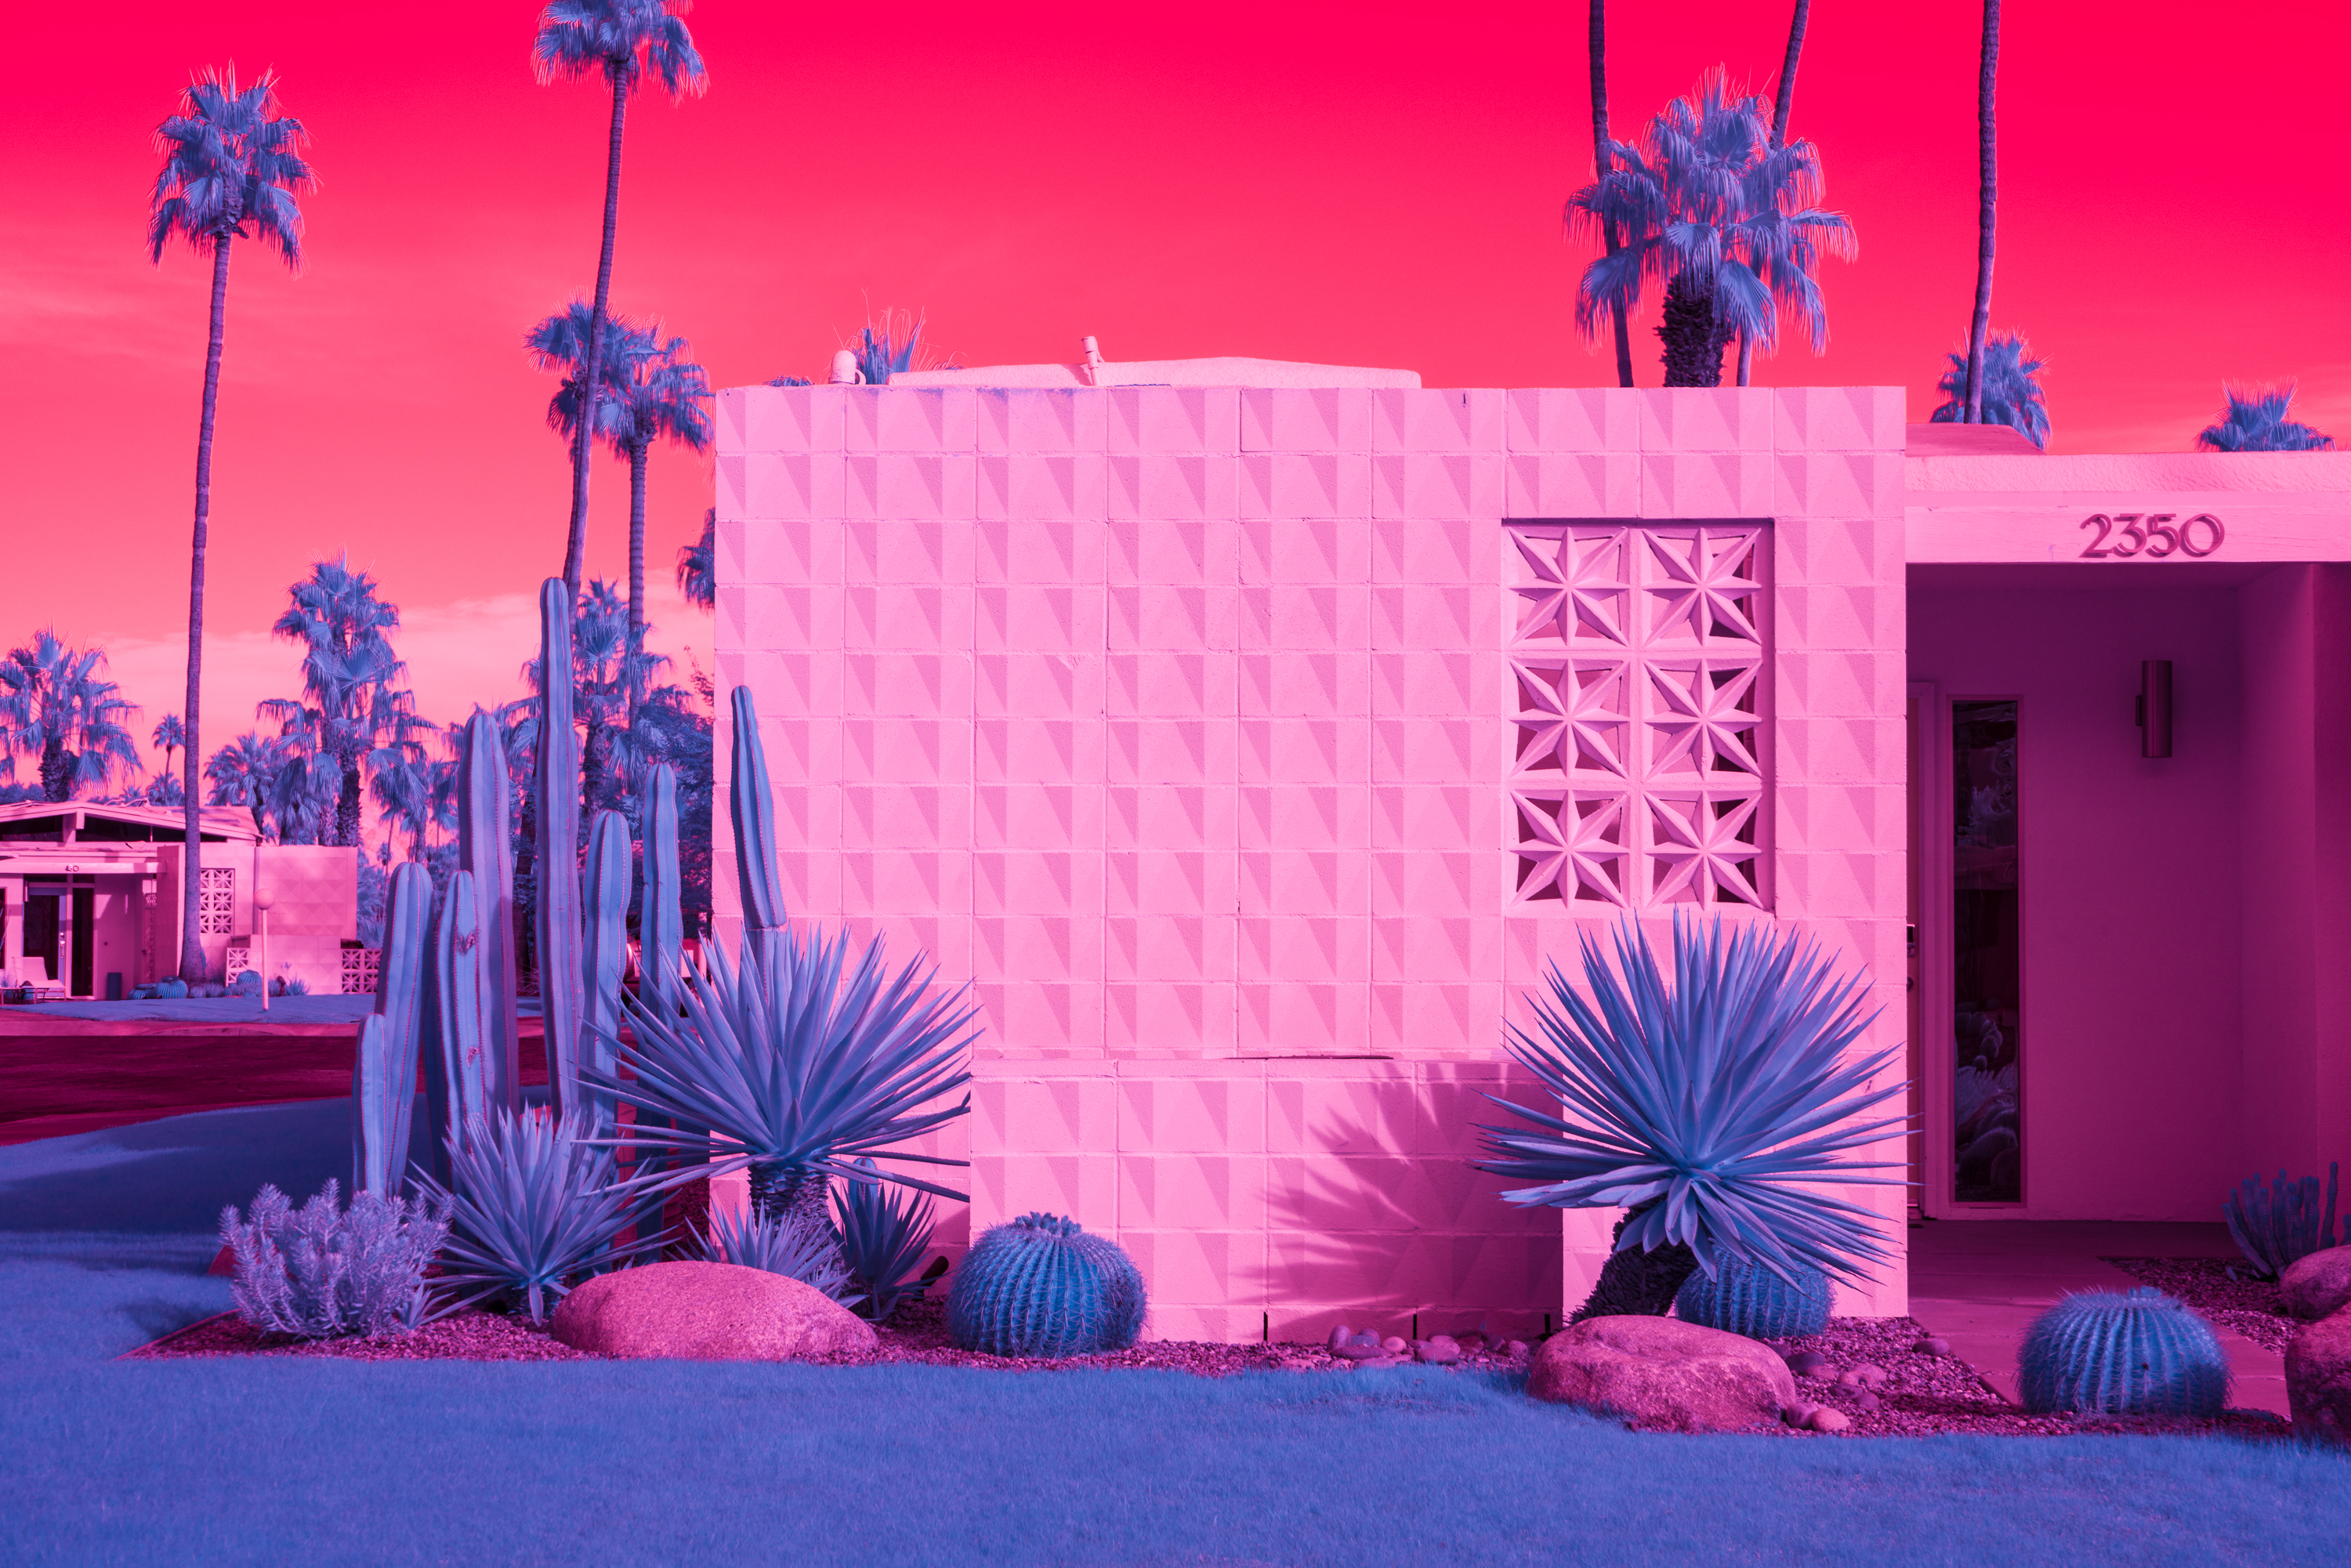 Photo taken with infrared lens and light filters of a midcentury house whose pale surface turns pink and the cacti and palm trees surrounding it blue.